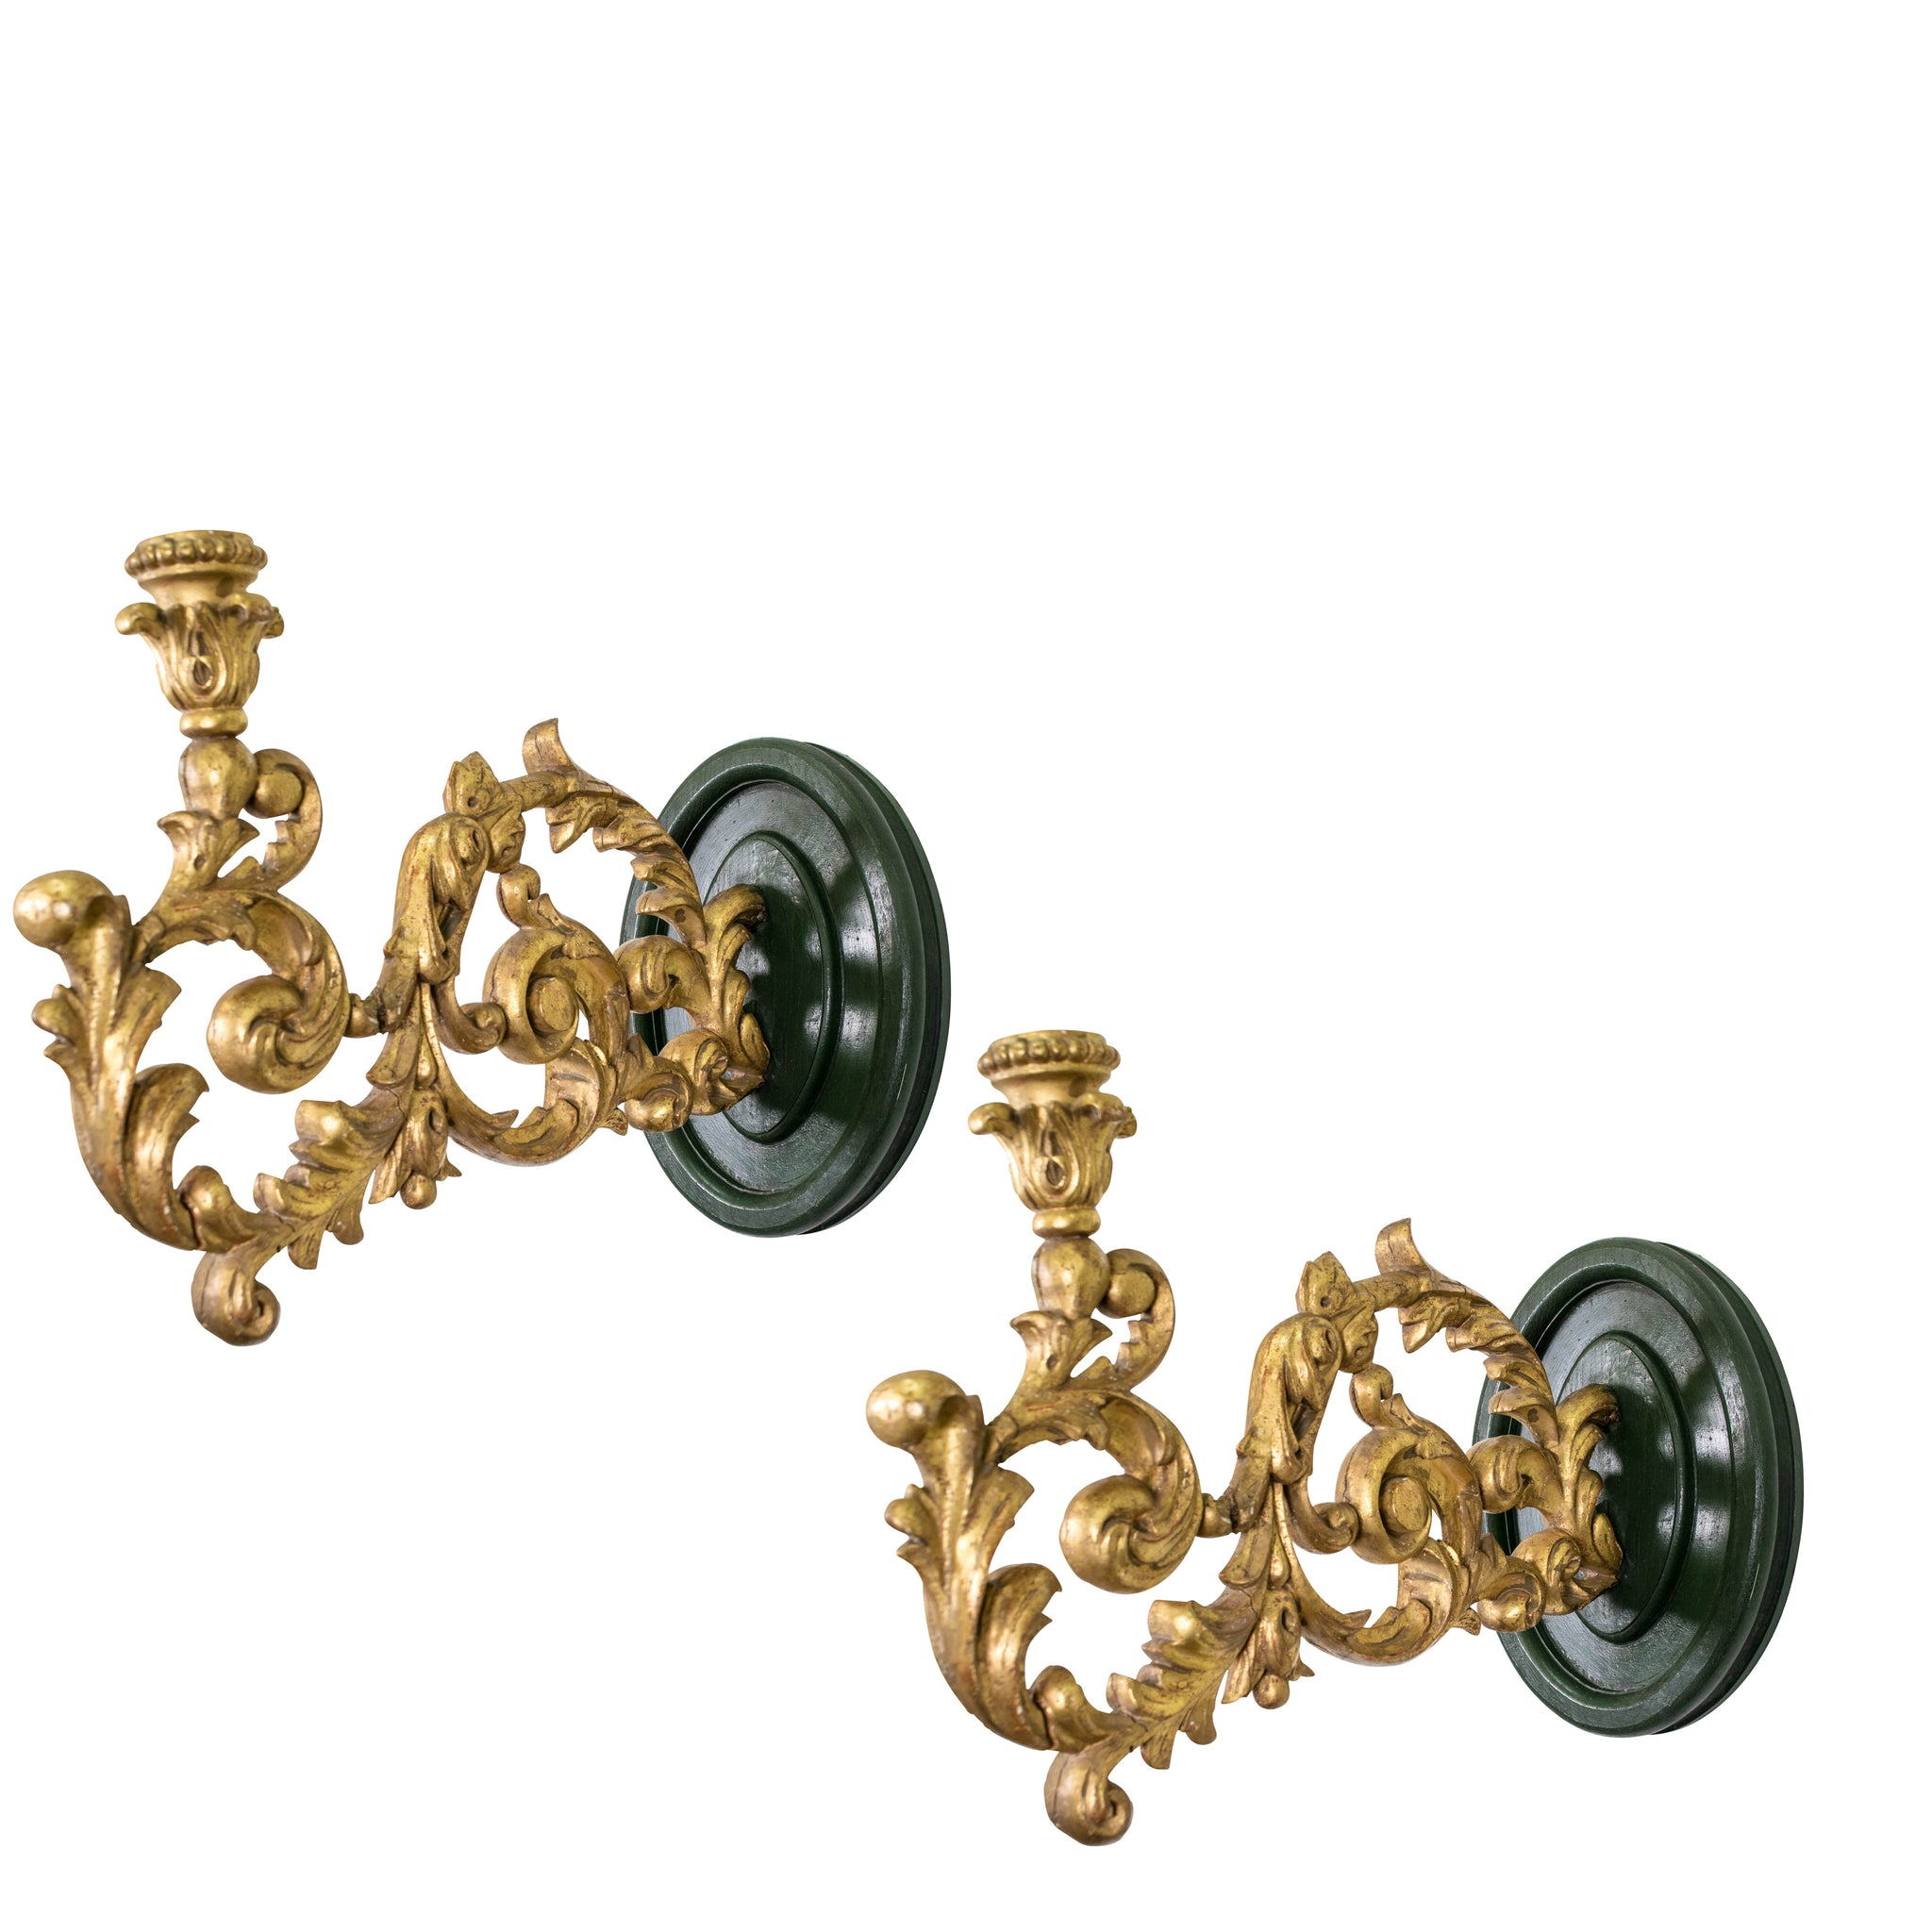 Pair 18th Century Italian Rococo Giltwood Candle Arms